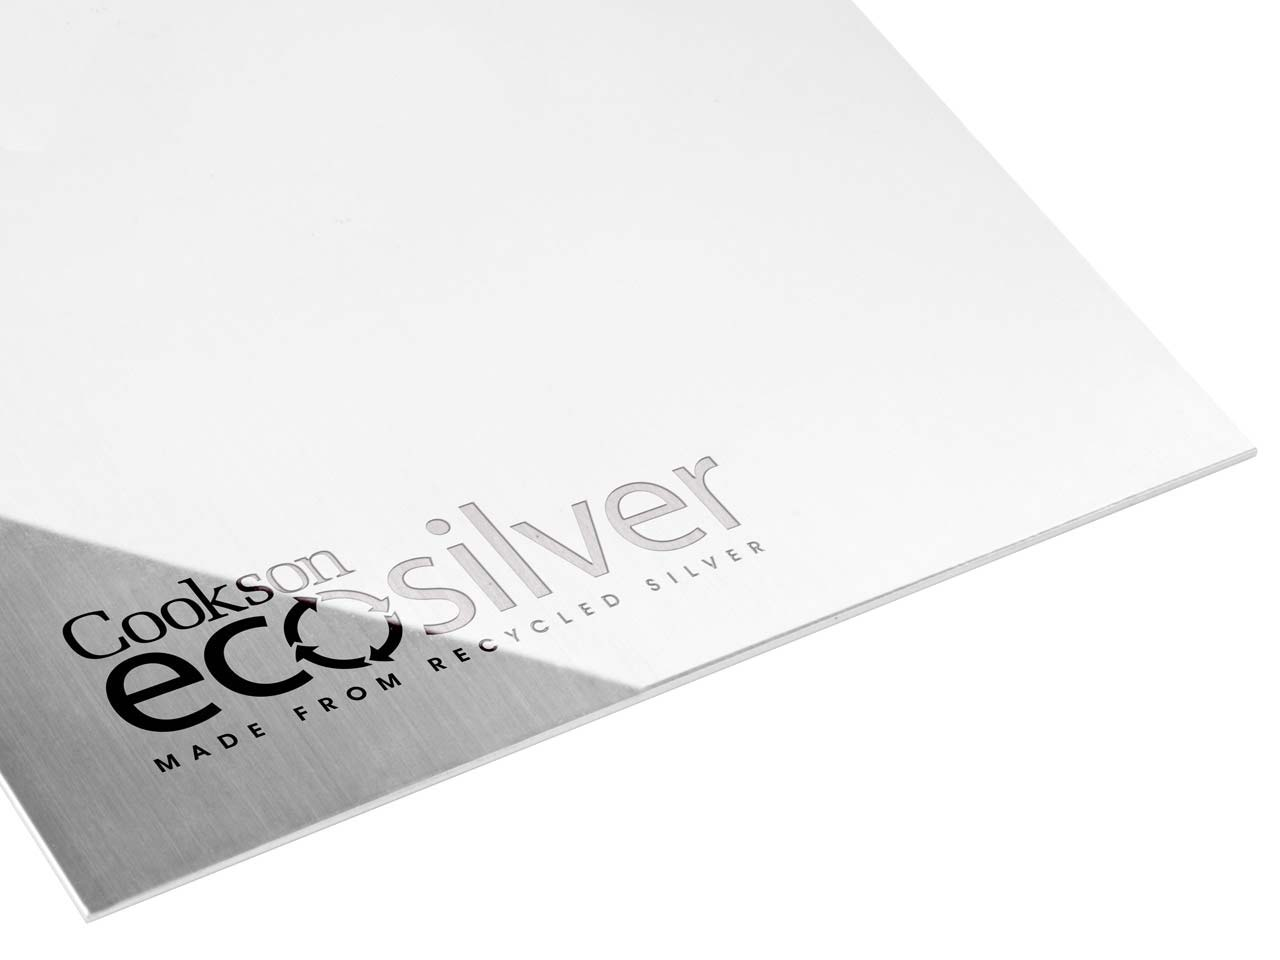 Ecosilver Sheet 0.90mm